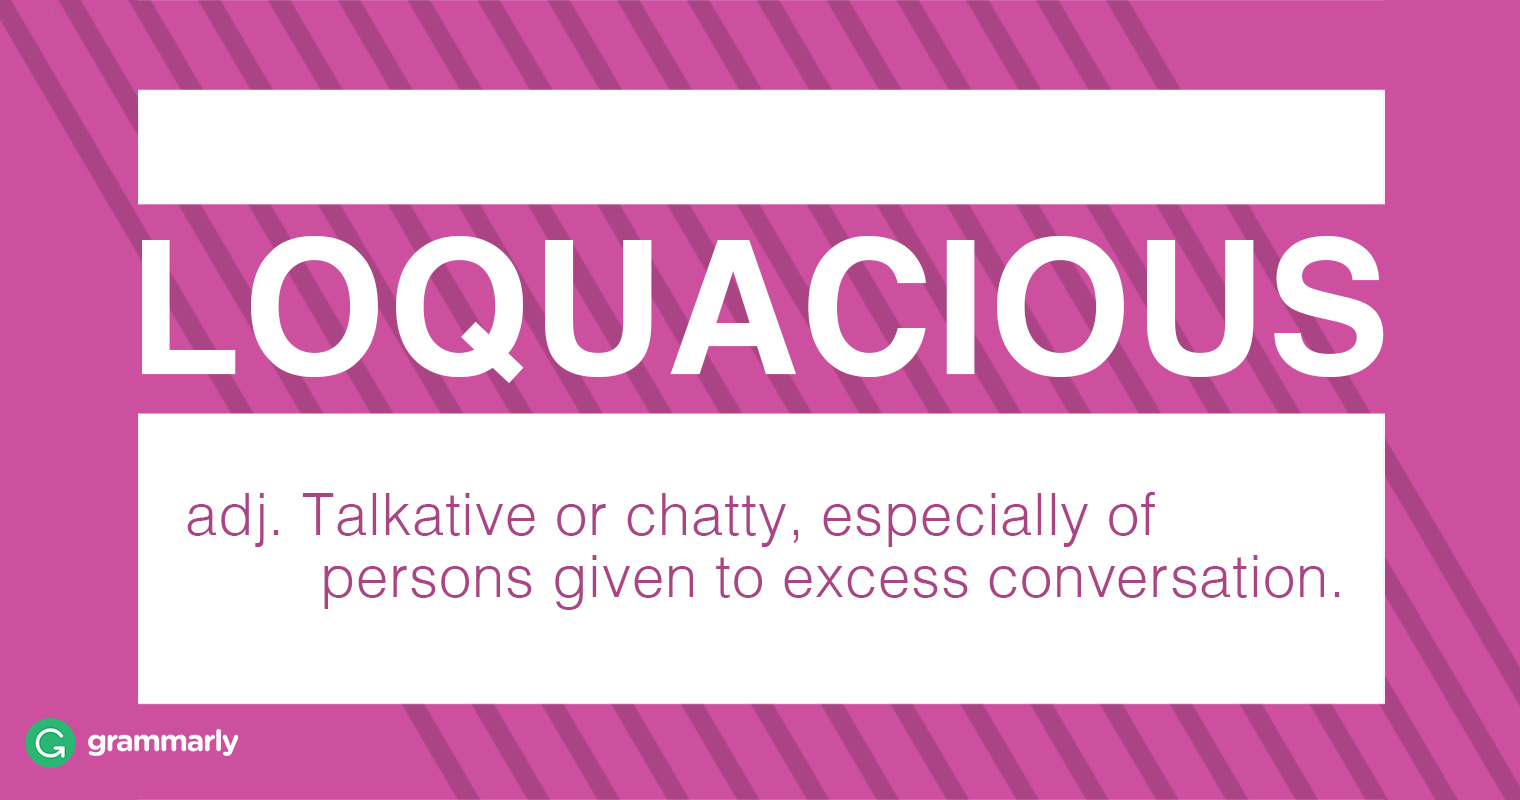 Loquacious adj. 1.Talkative or chatty, especially of persons given to excess conversation.